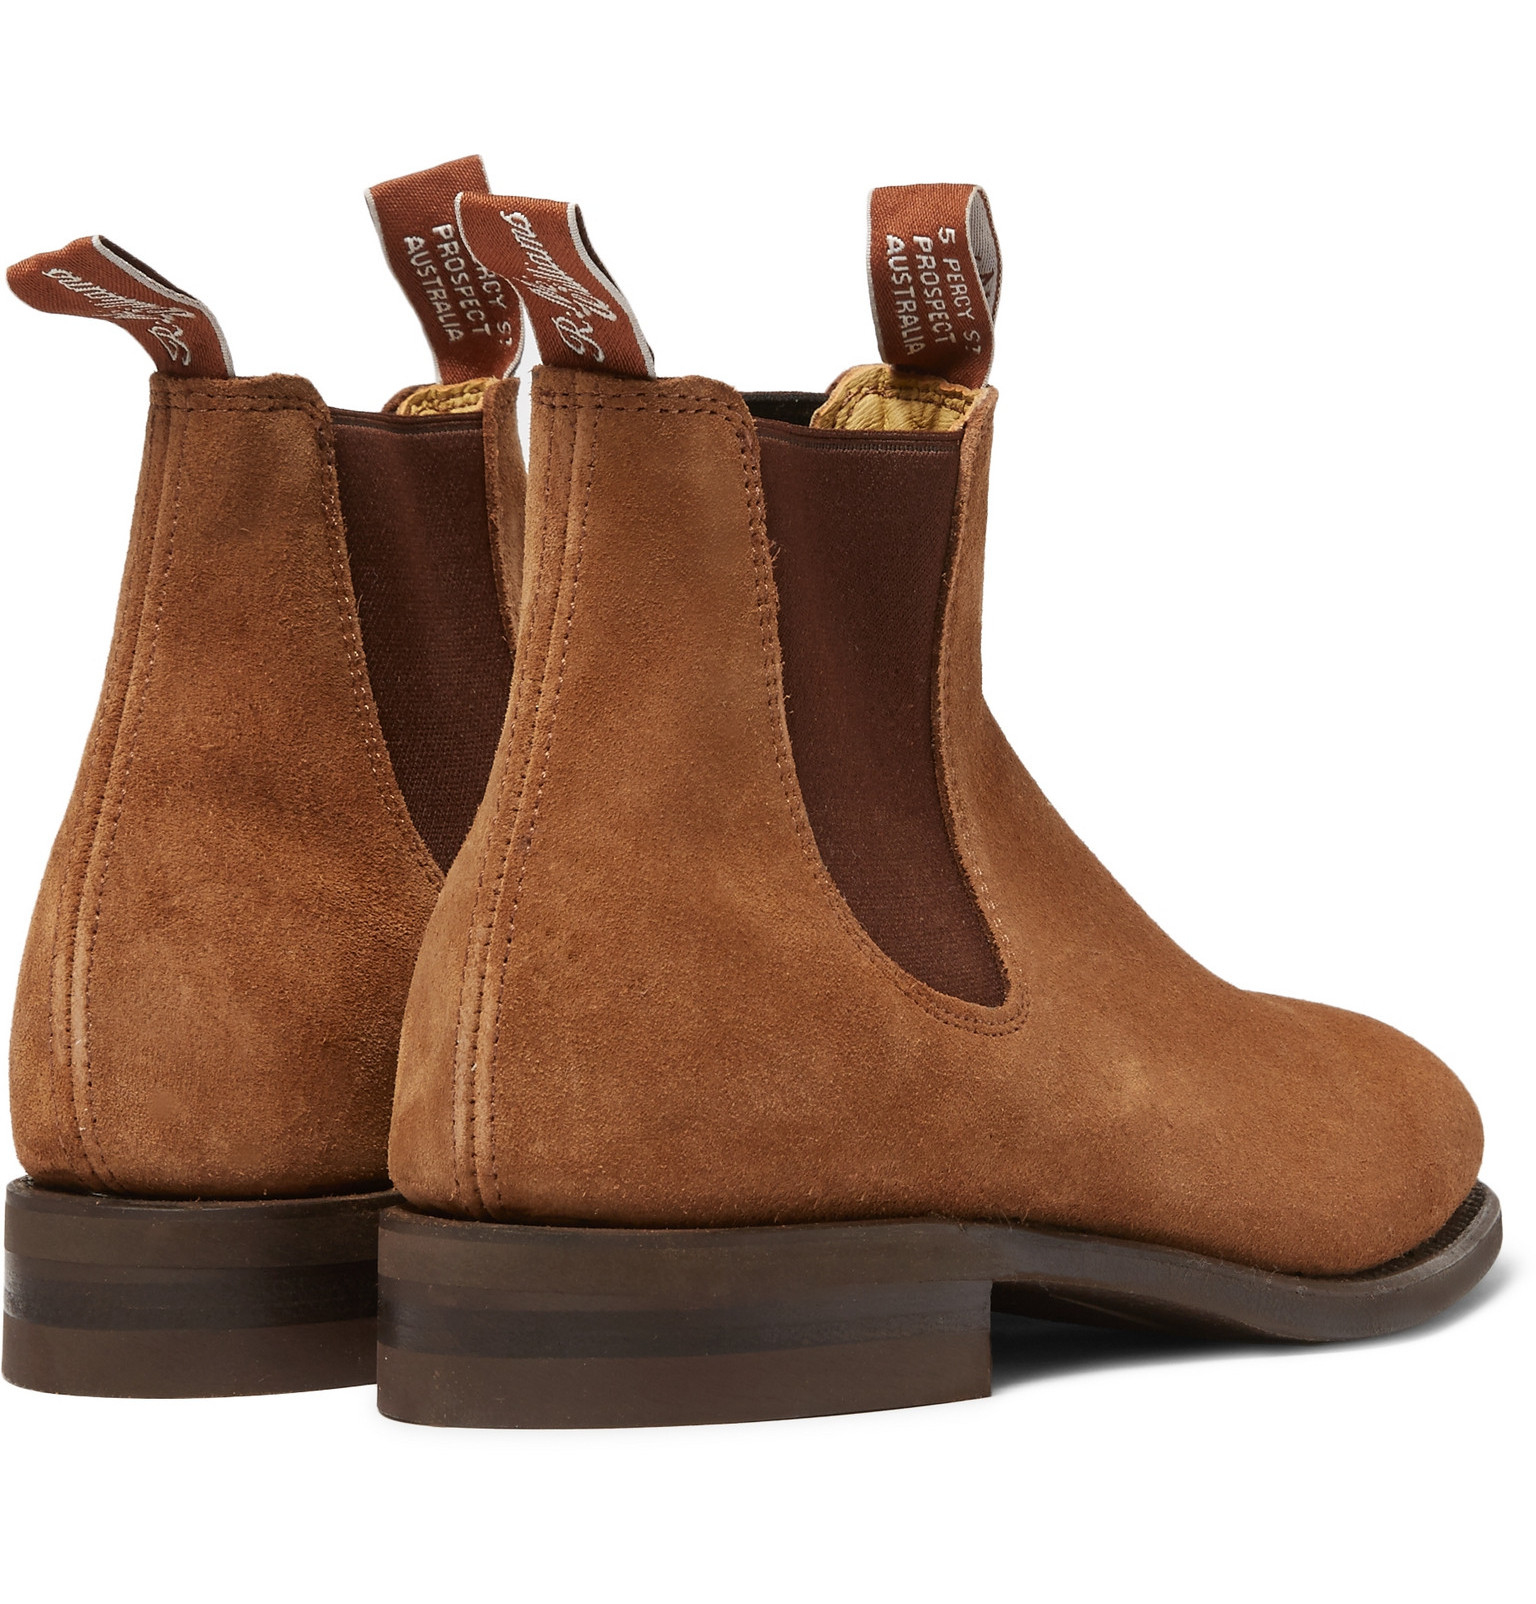 R M Williams Suede Chelsea Boots In Brown For Men Lyst